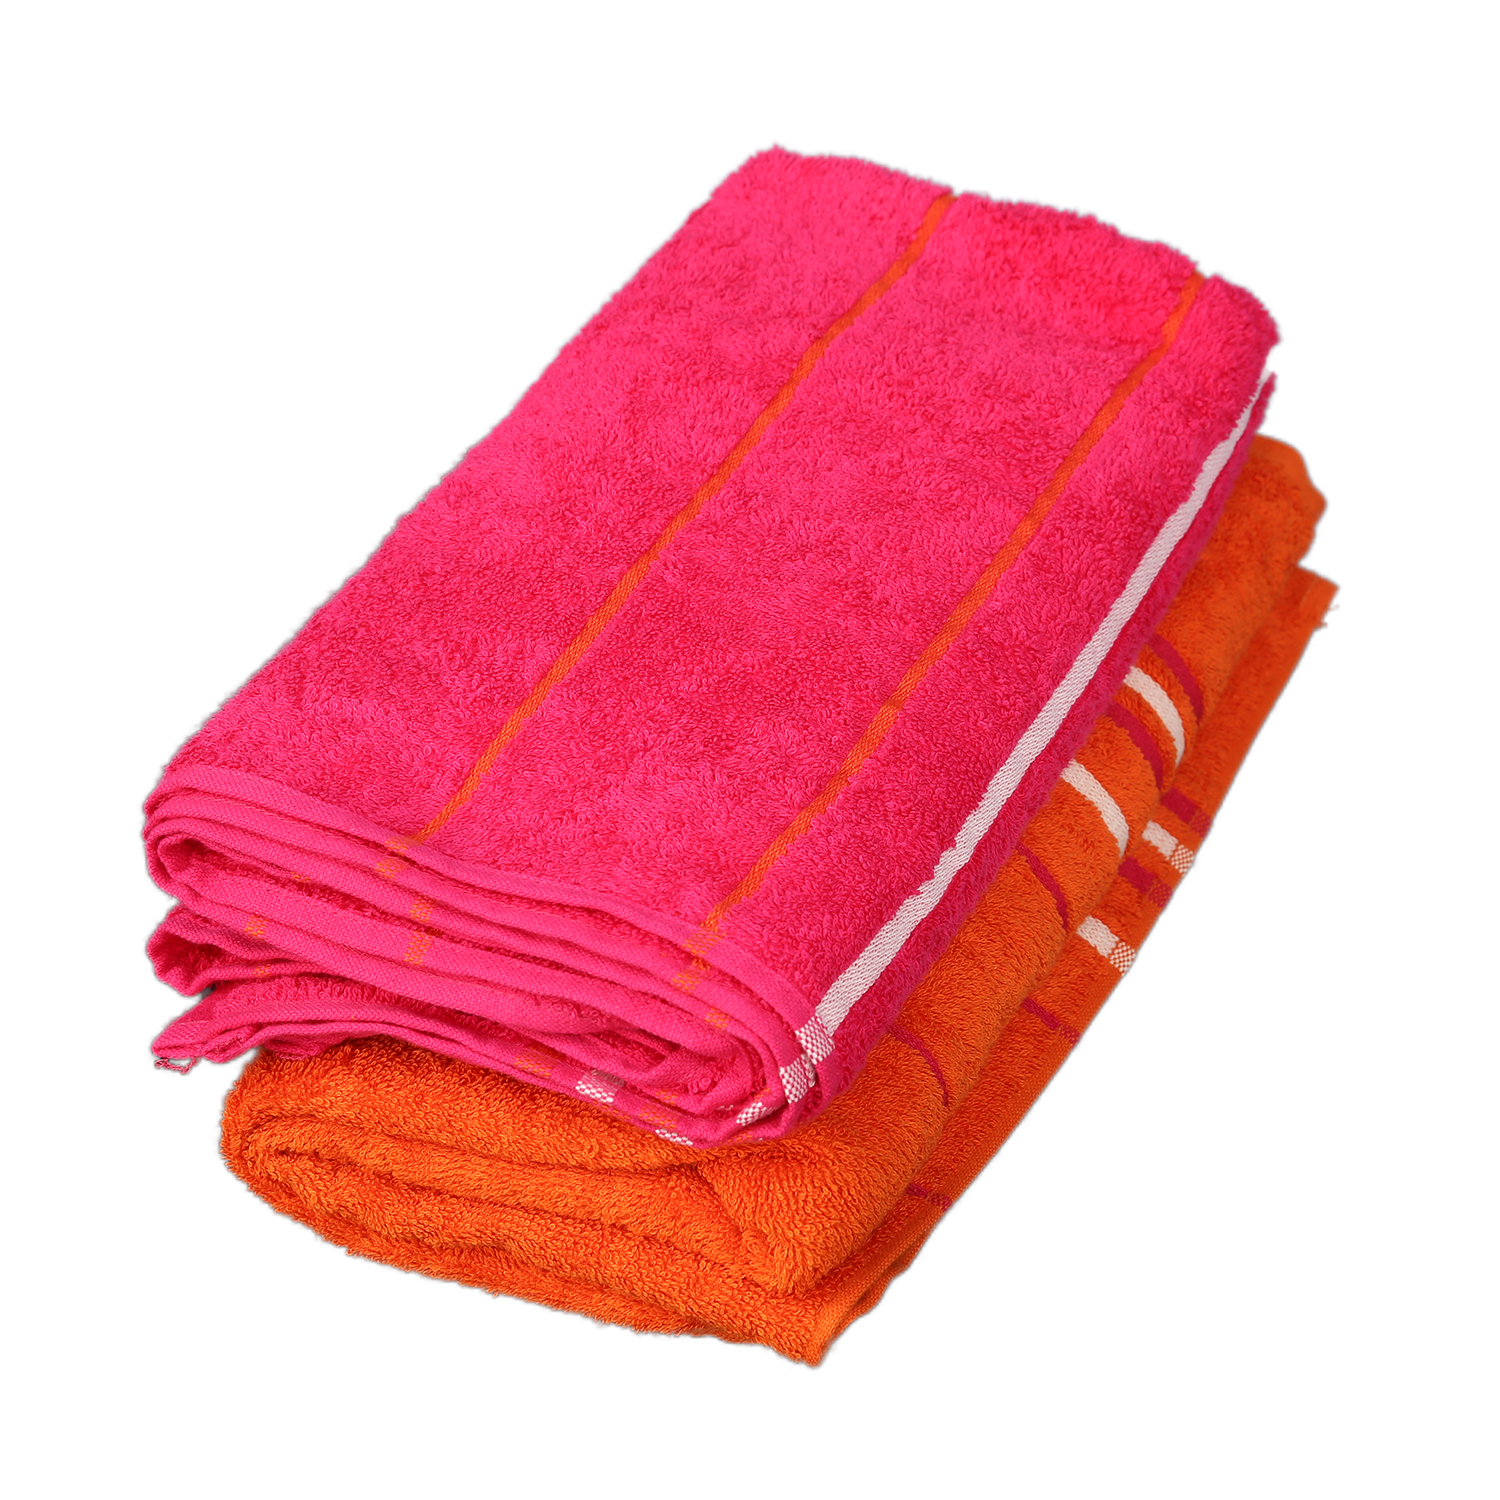 Emilia Carded Cotton Bath Towels in Orange & Fuchsia Colour by Living Essence